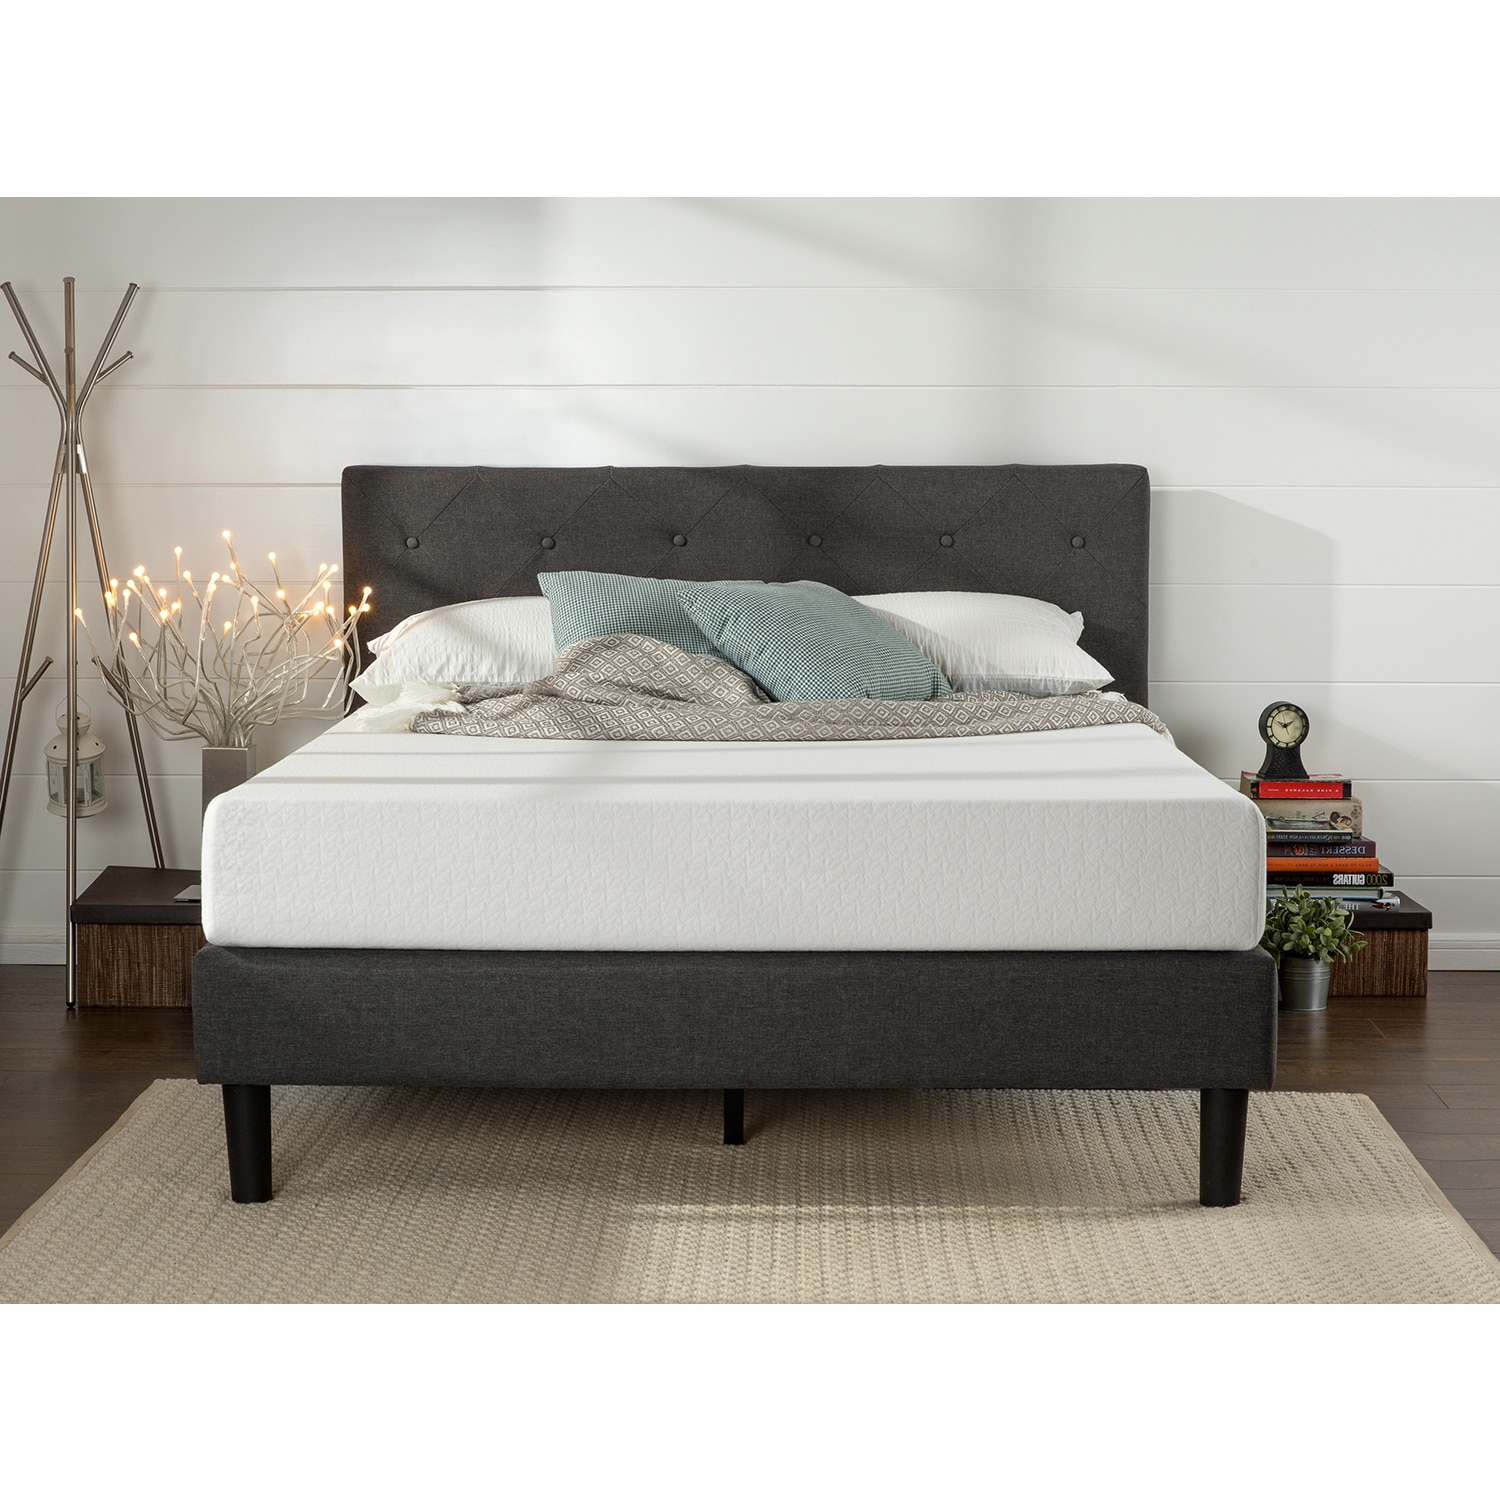 Priage By Zinus King Size Upholstered Button Tufted Diamond Stitched  Platform Bed